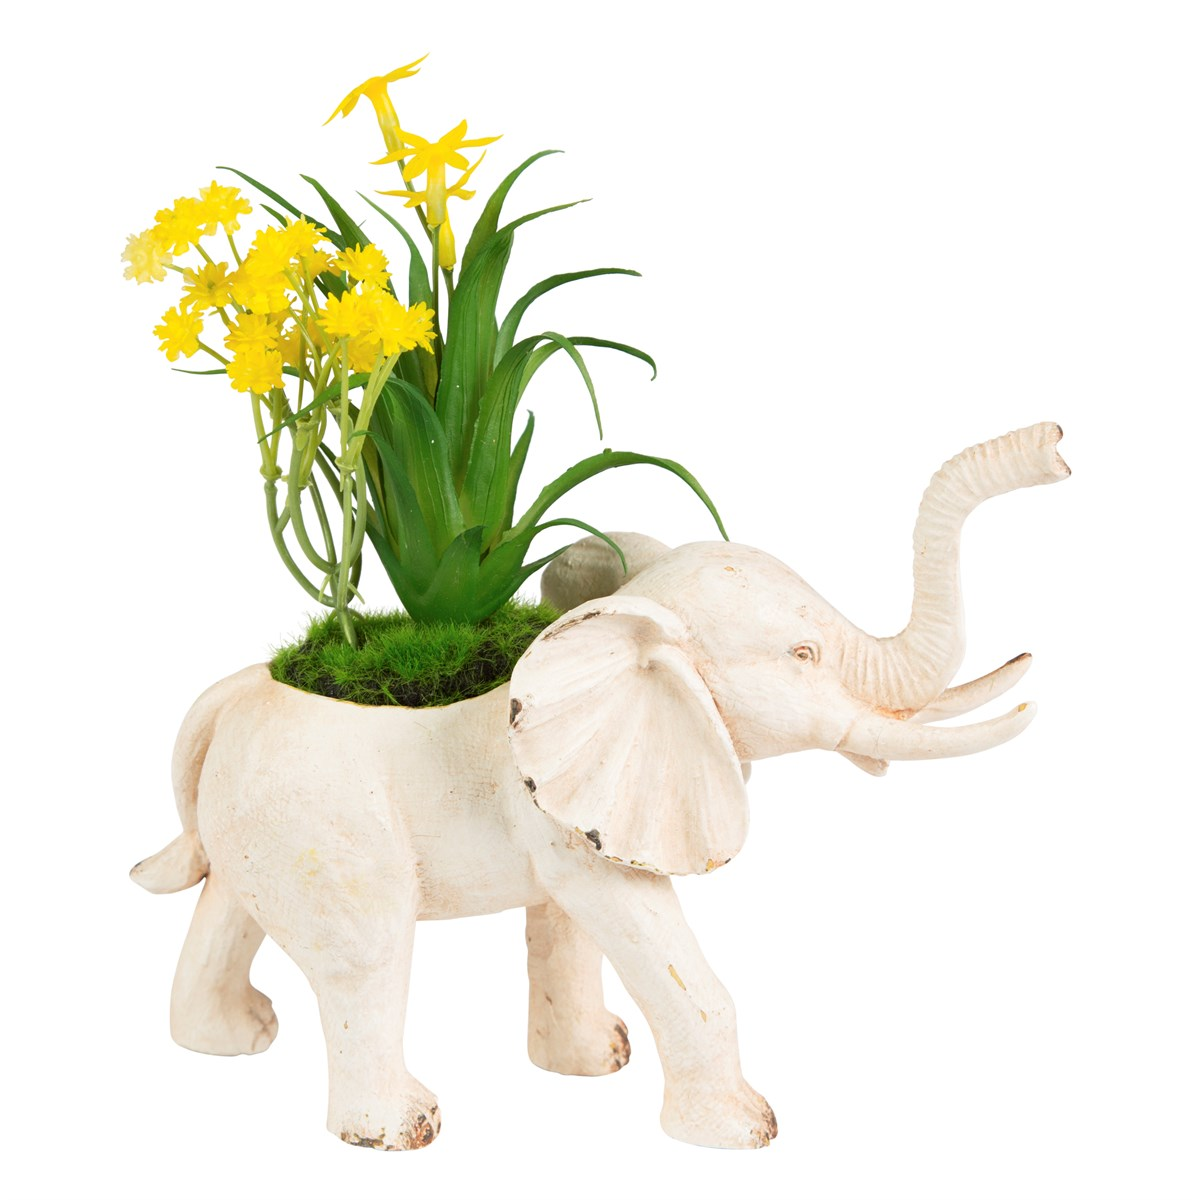 Elephant Decoration Interieur Rustic Elephant Decoration With Flowers